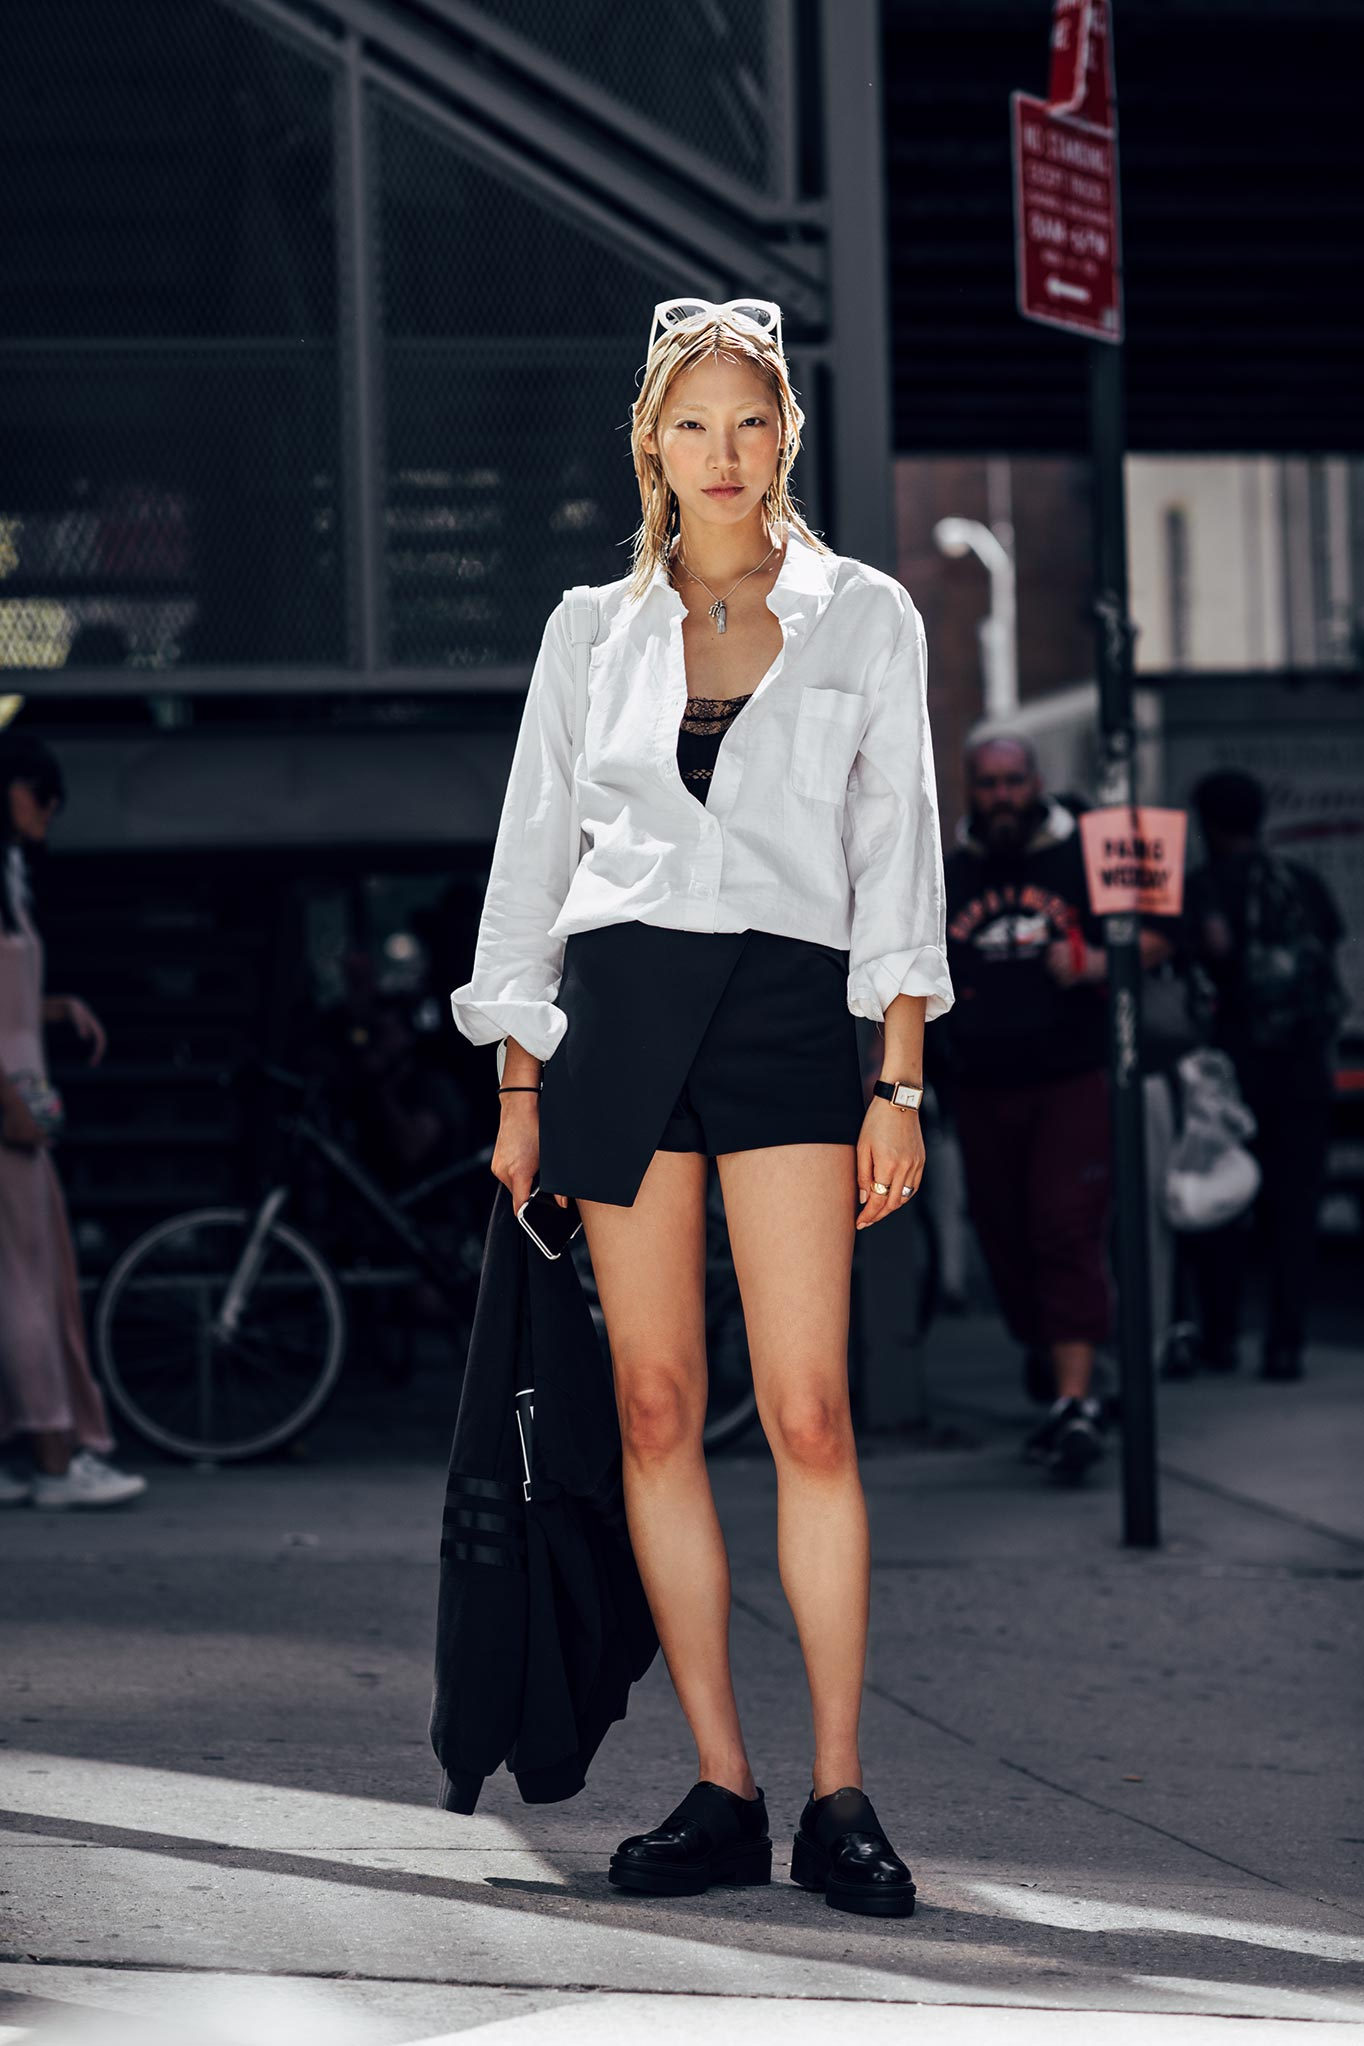 Soo Joo Park at New York Fashion Week Spring/Summer